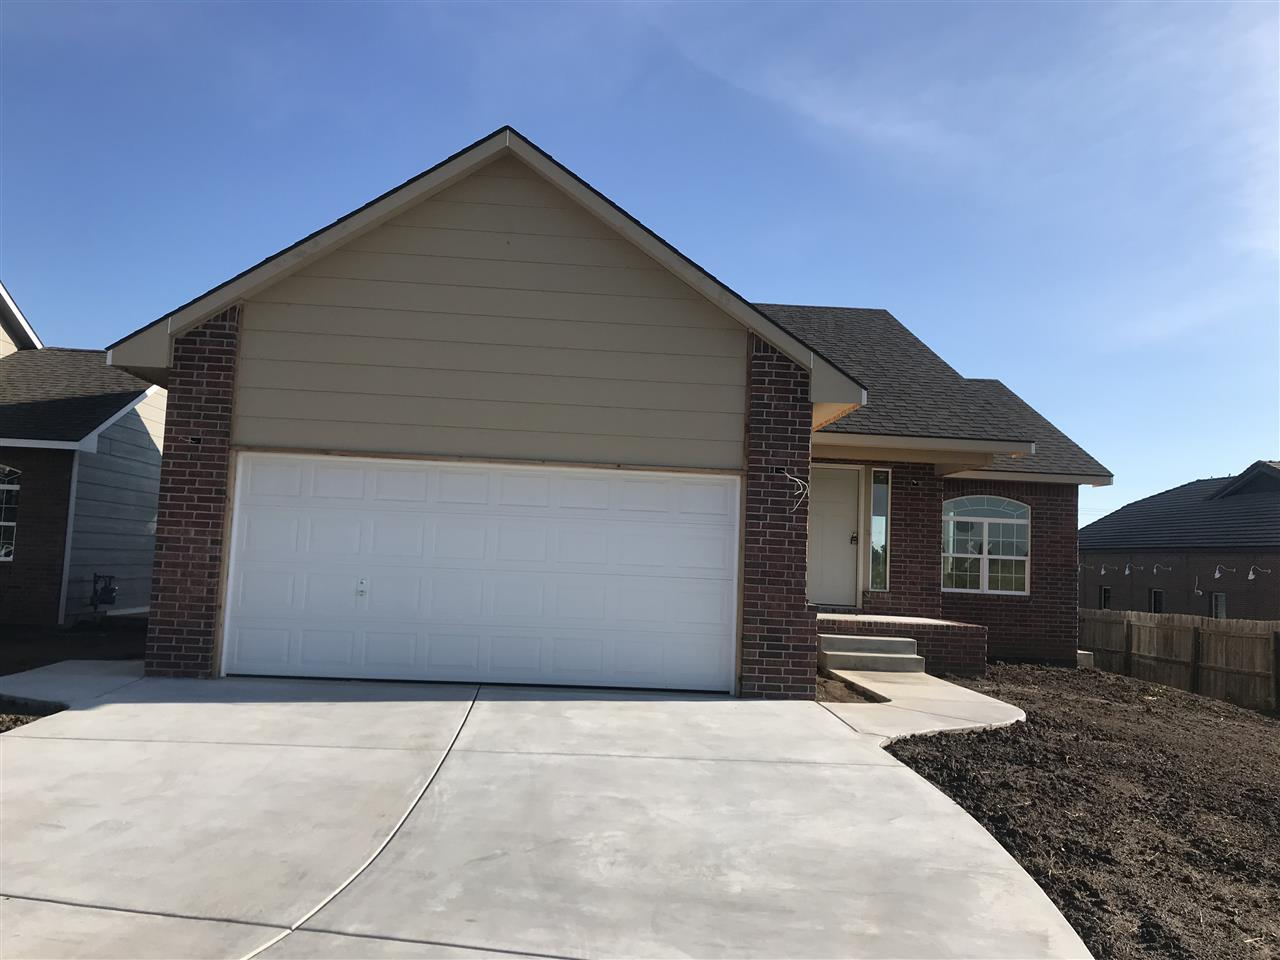 Newly built home in a desirable neighborhood.  4 bedroom, 3 full bath, finished basement with large